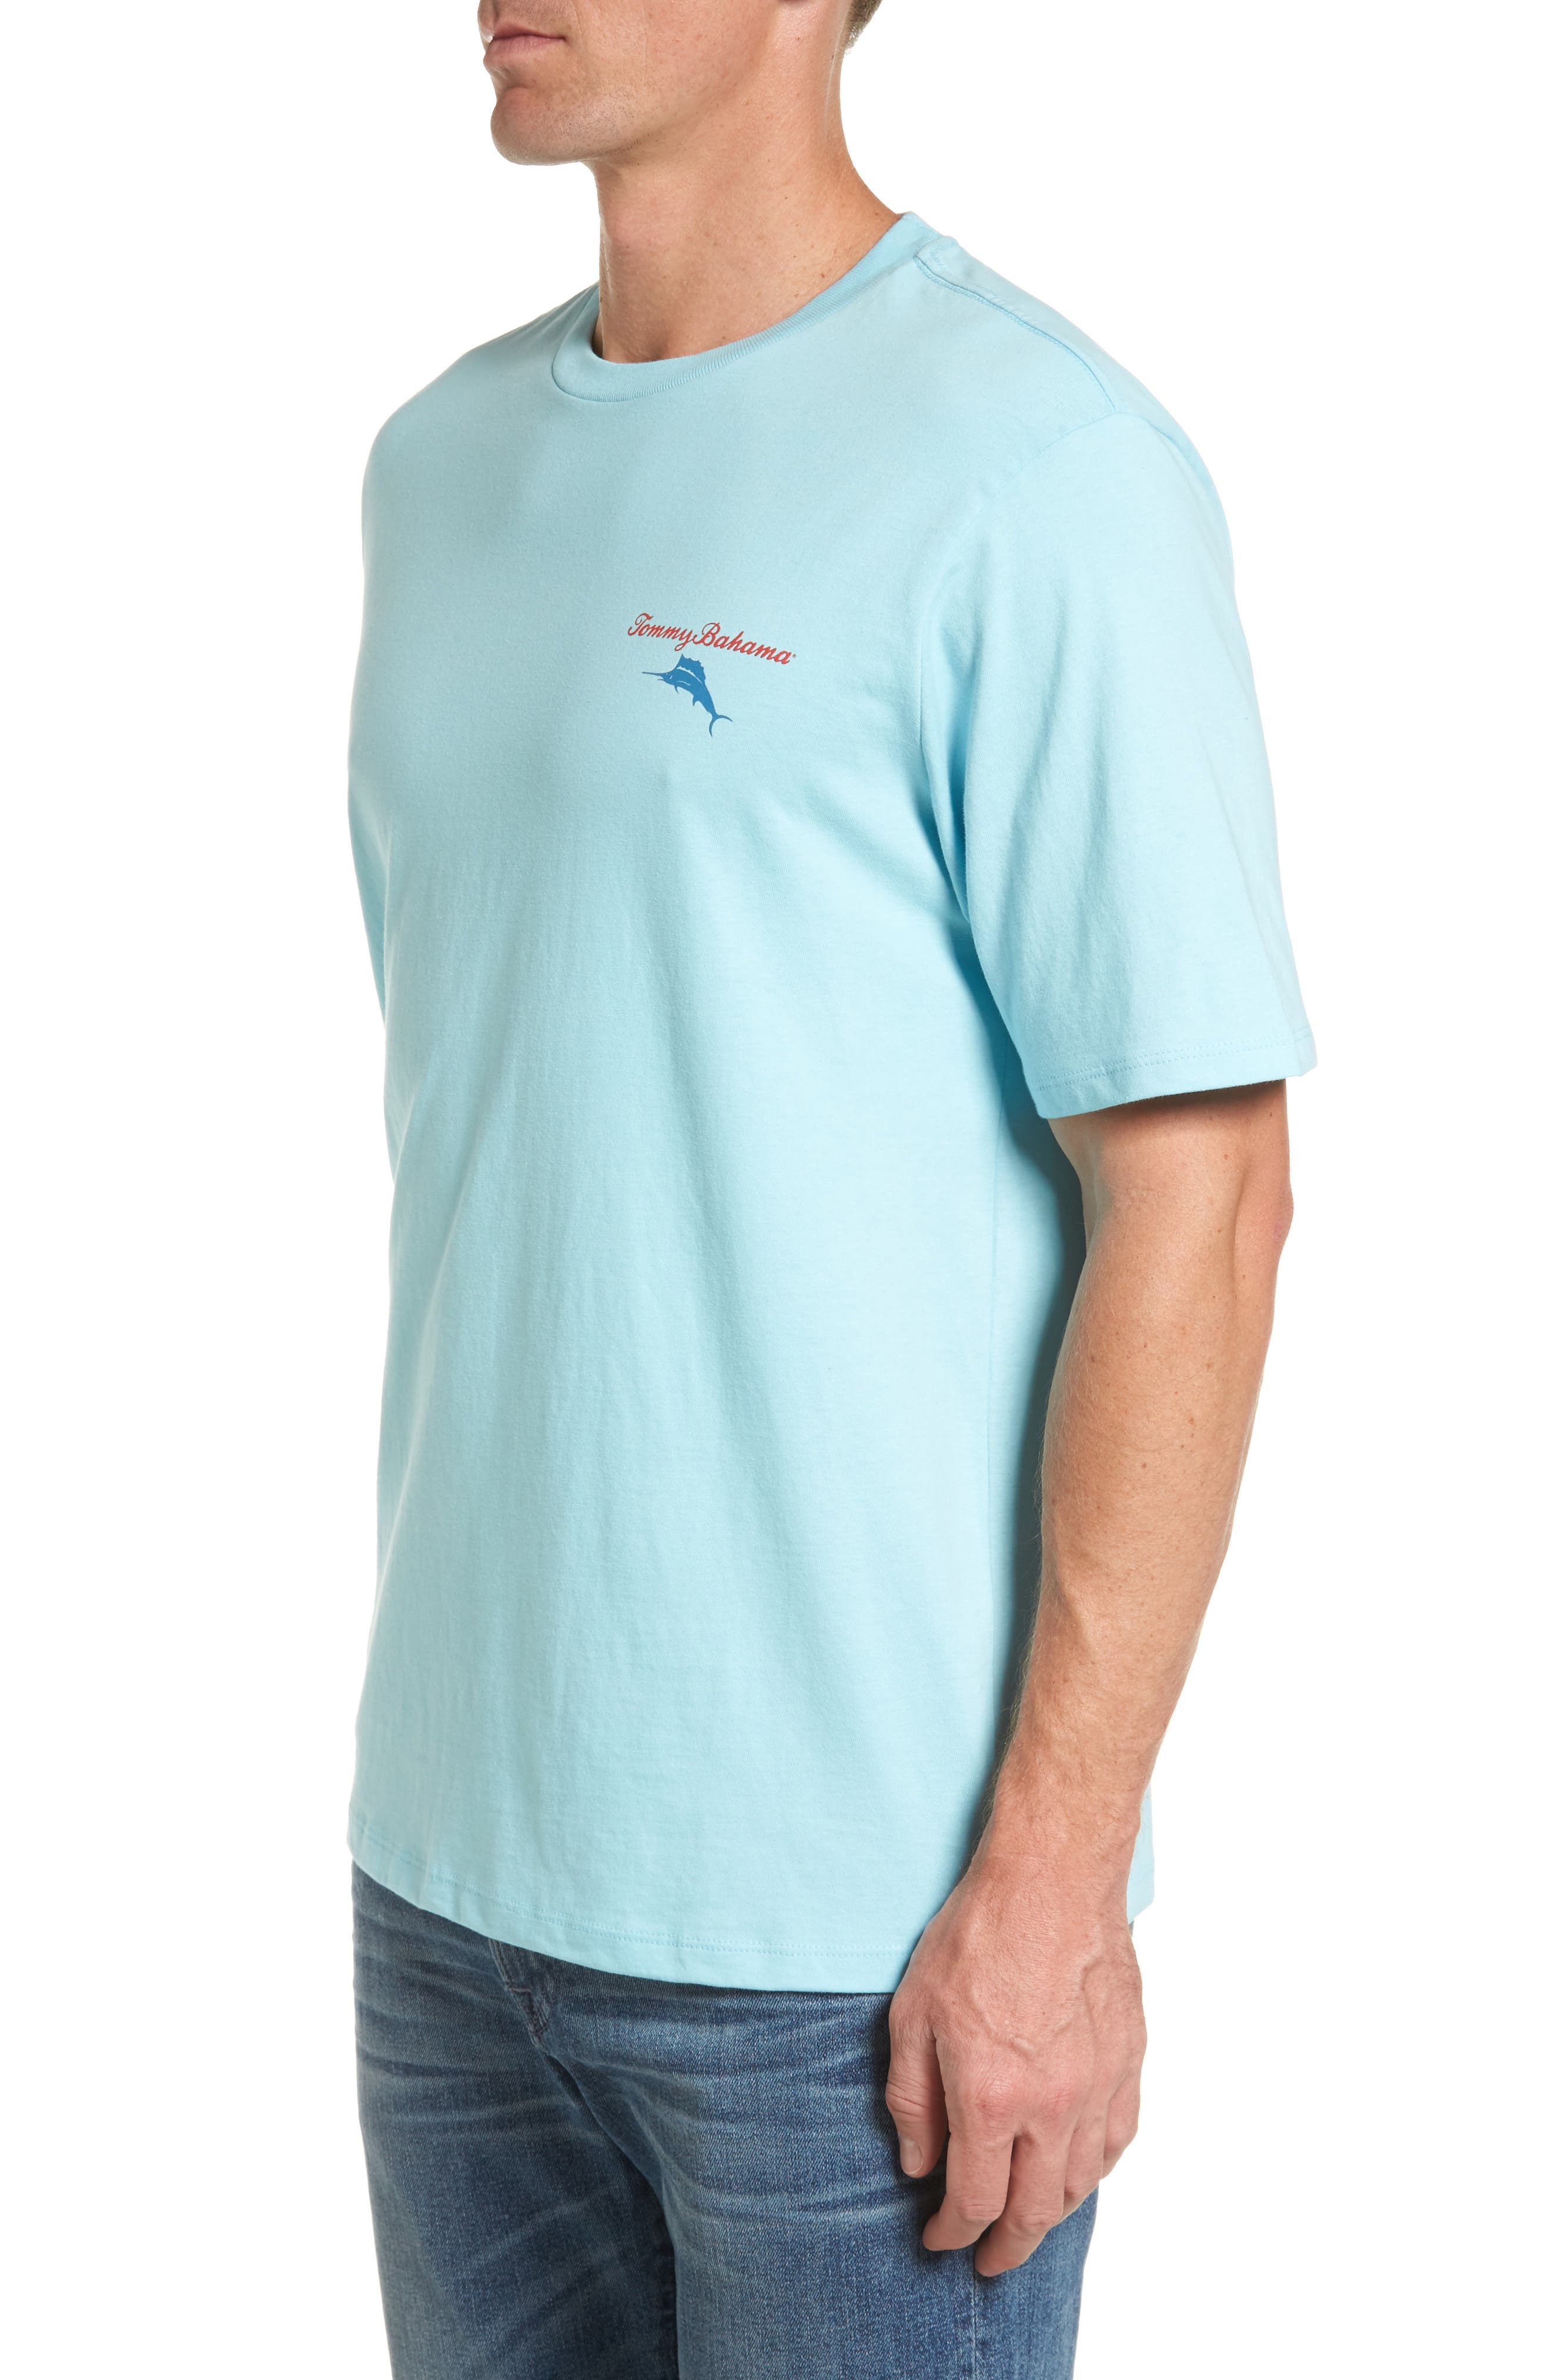 Mr. Ice Guy Graphic T-Shirt,                             Alternate thumbnail 4, color,                             Graceful Sea